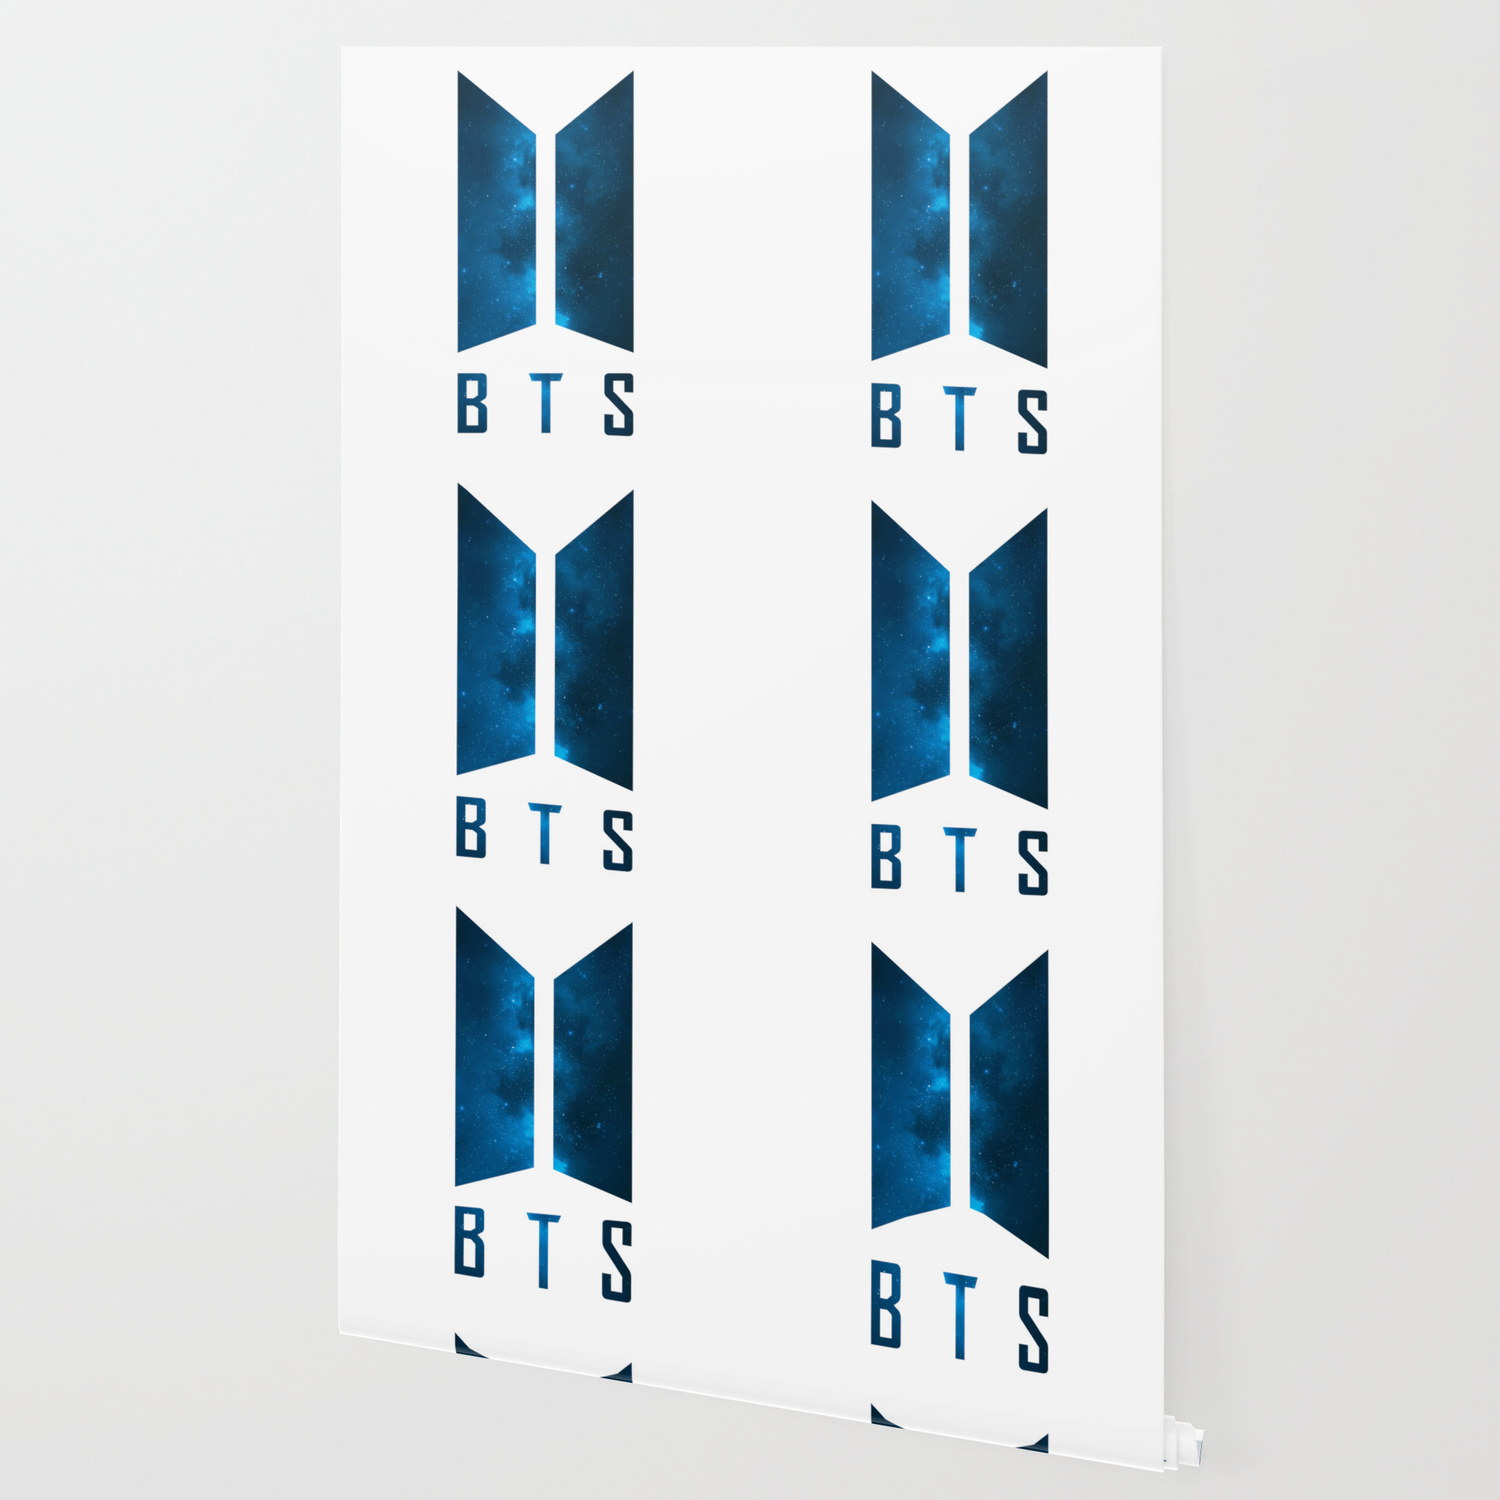 Aesthetic Bts Army Logo Wallpaper Total Update